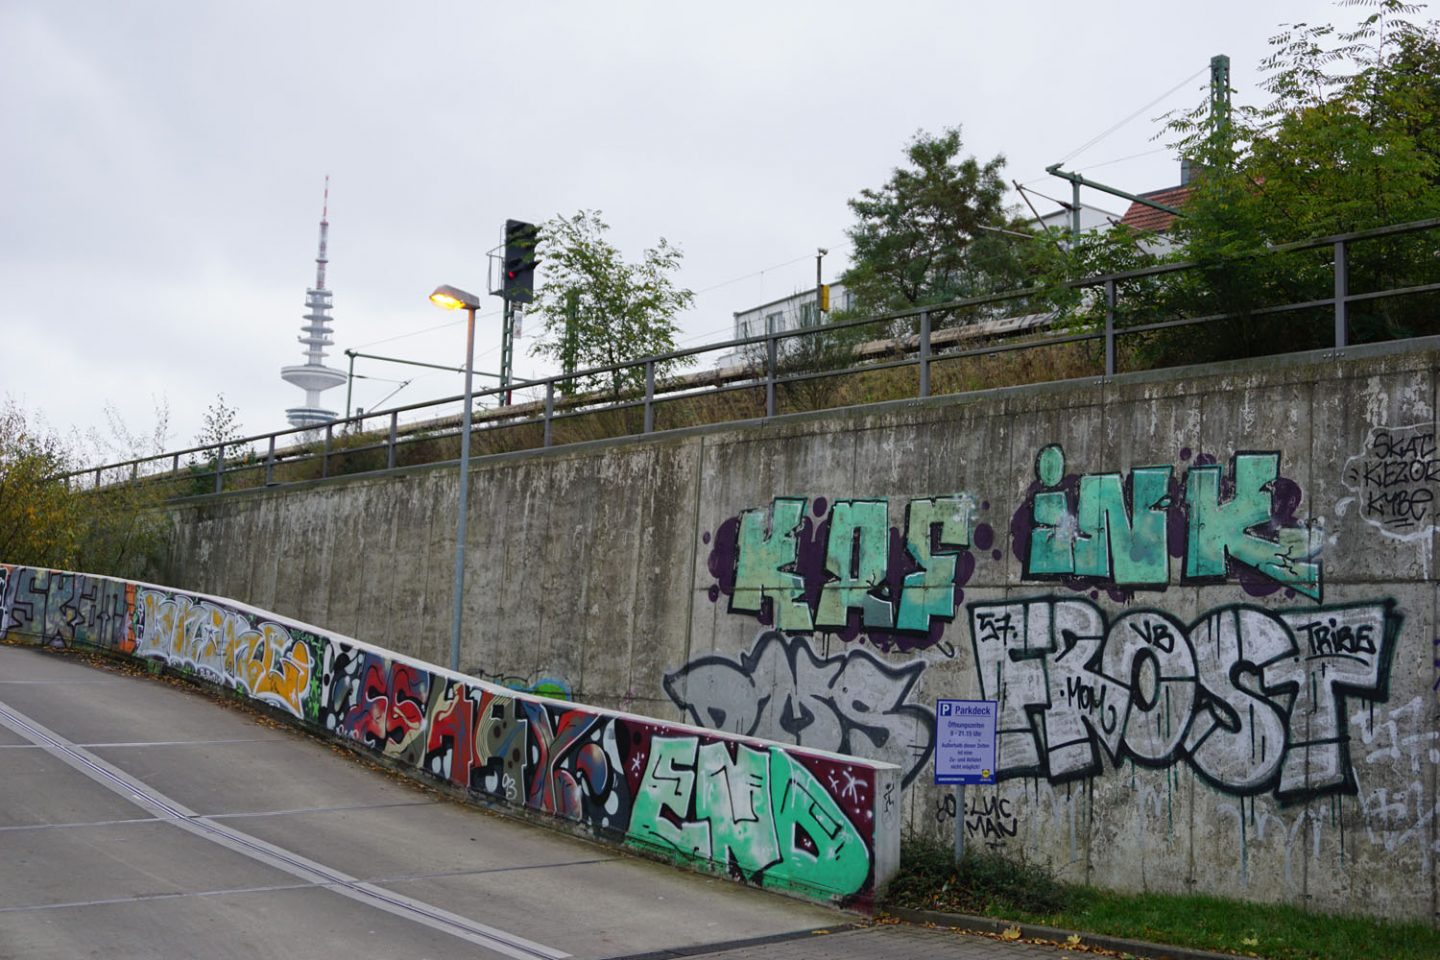 Hambourg: Bombs and Tags